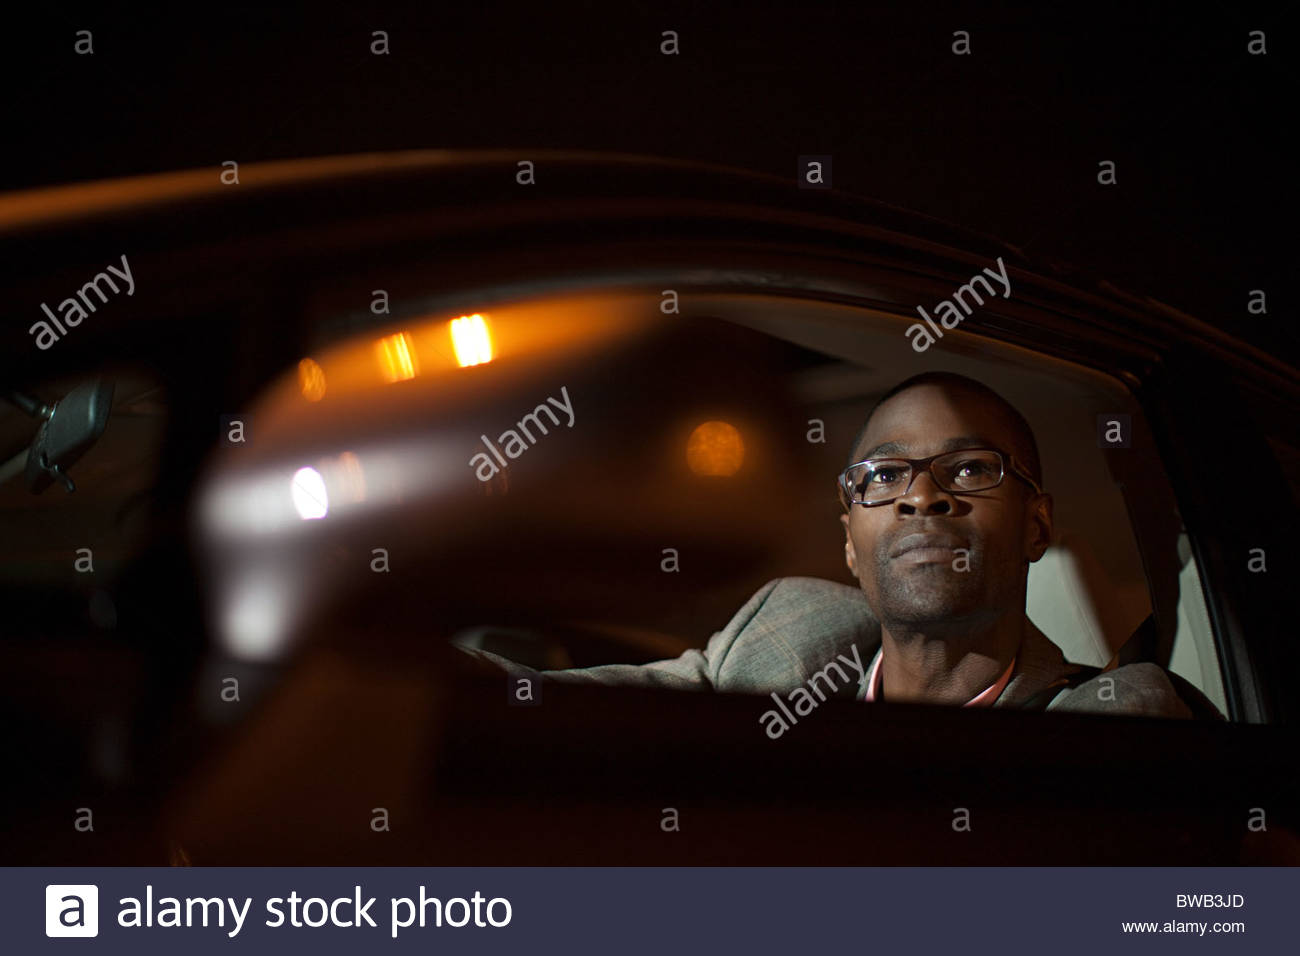 Businessman in car at night - Stock Image